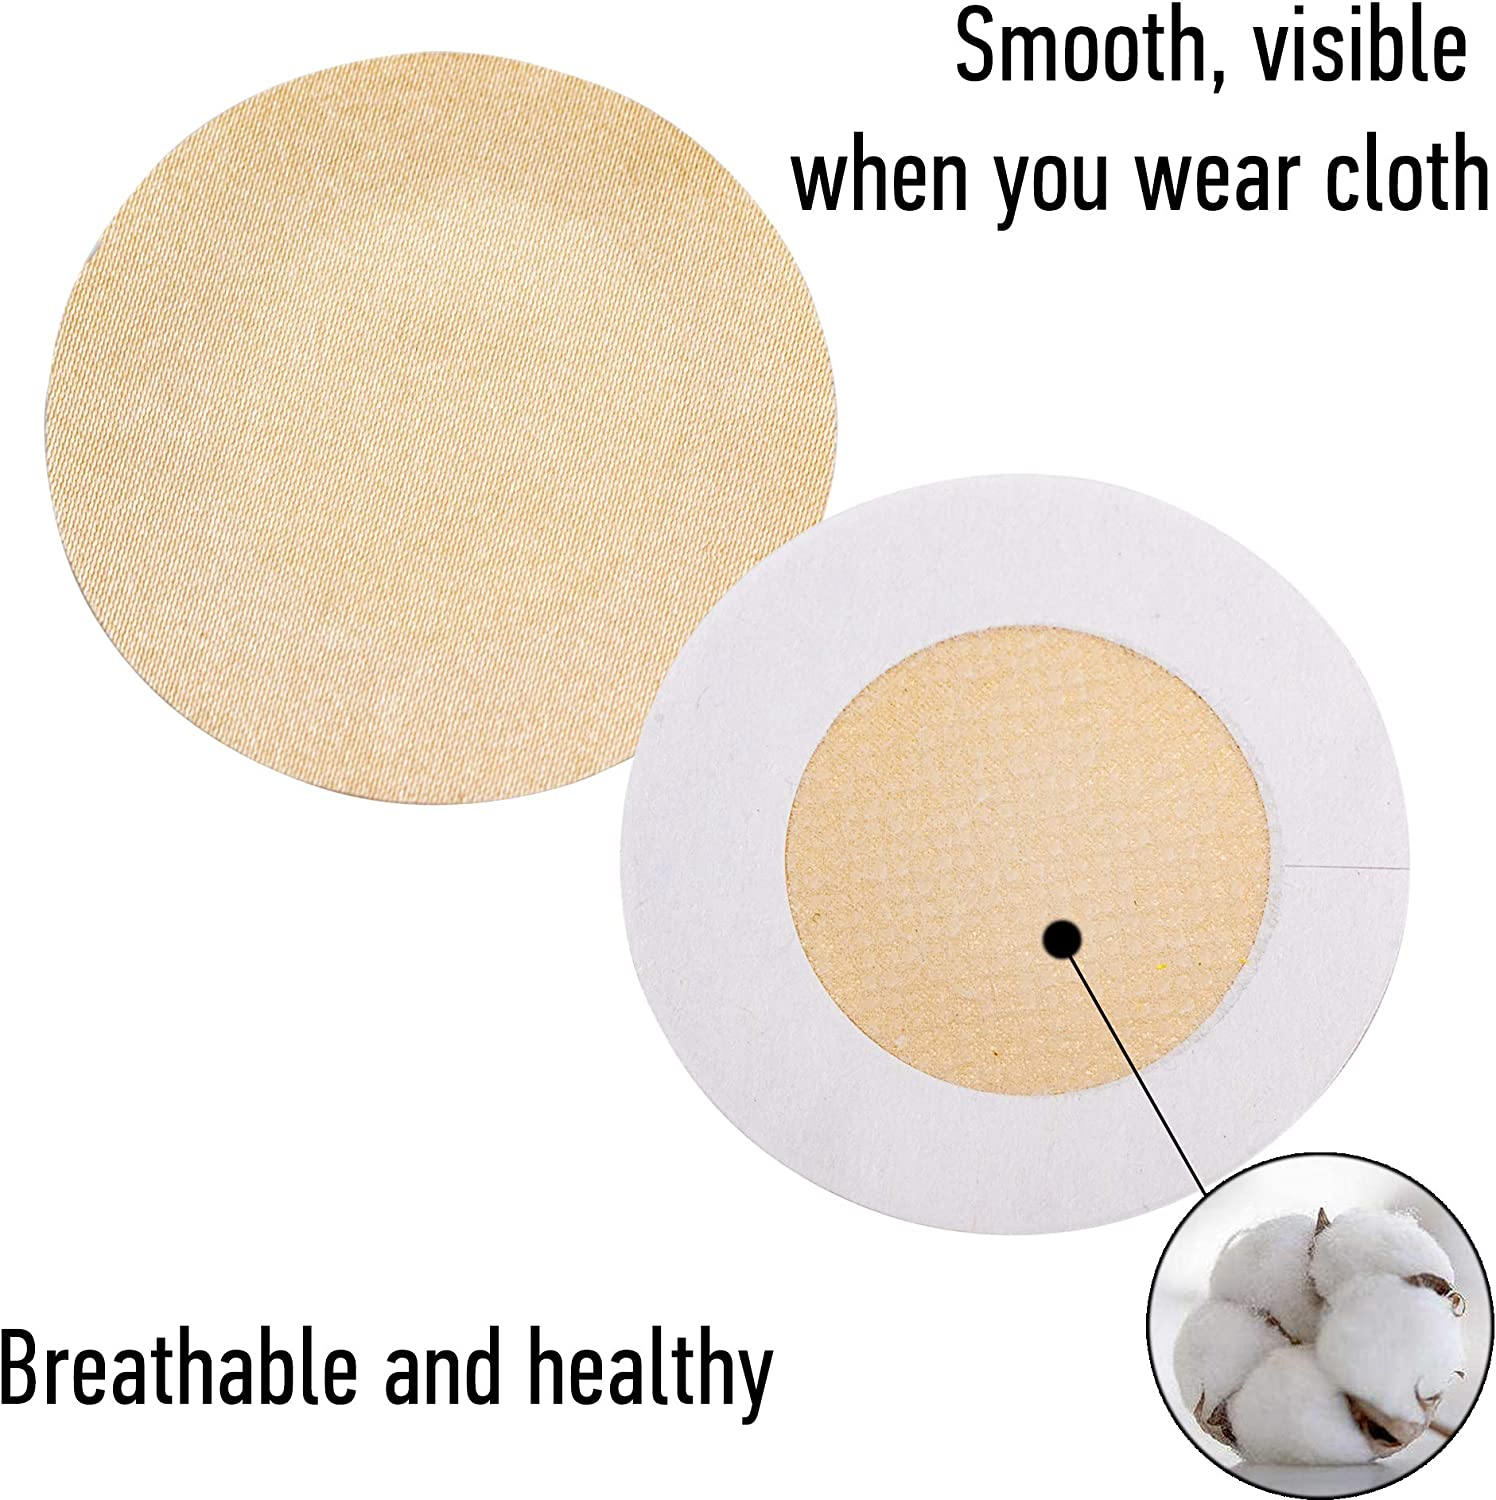 16.4Ft Boob Tape Breast Super Lifted Star/'s Trick Invisible Breast Lift Tape Medical Grade Strapless Backless Bra Tape For All Cups